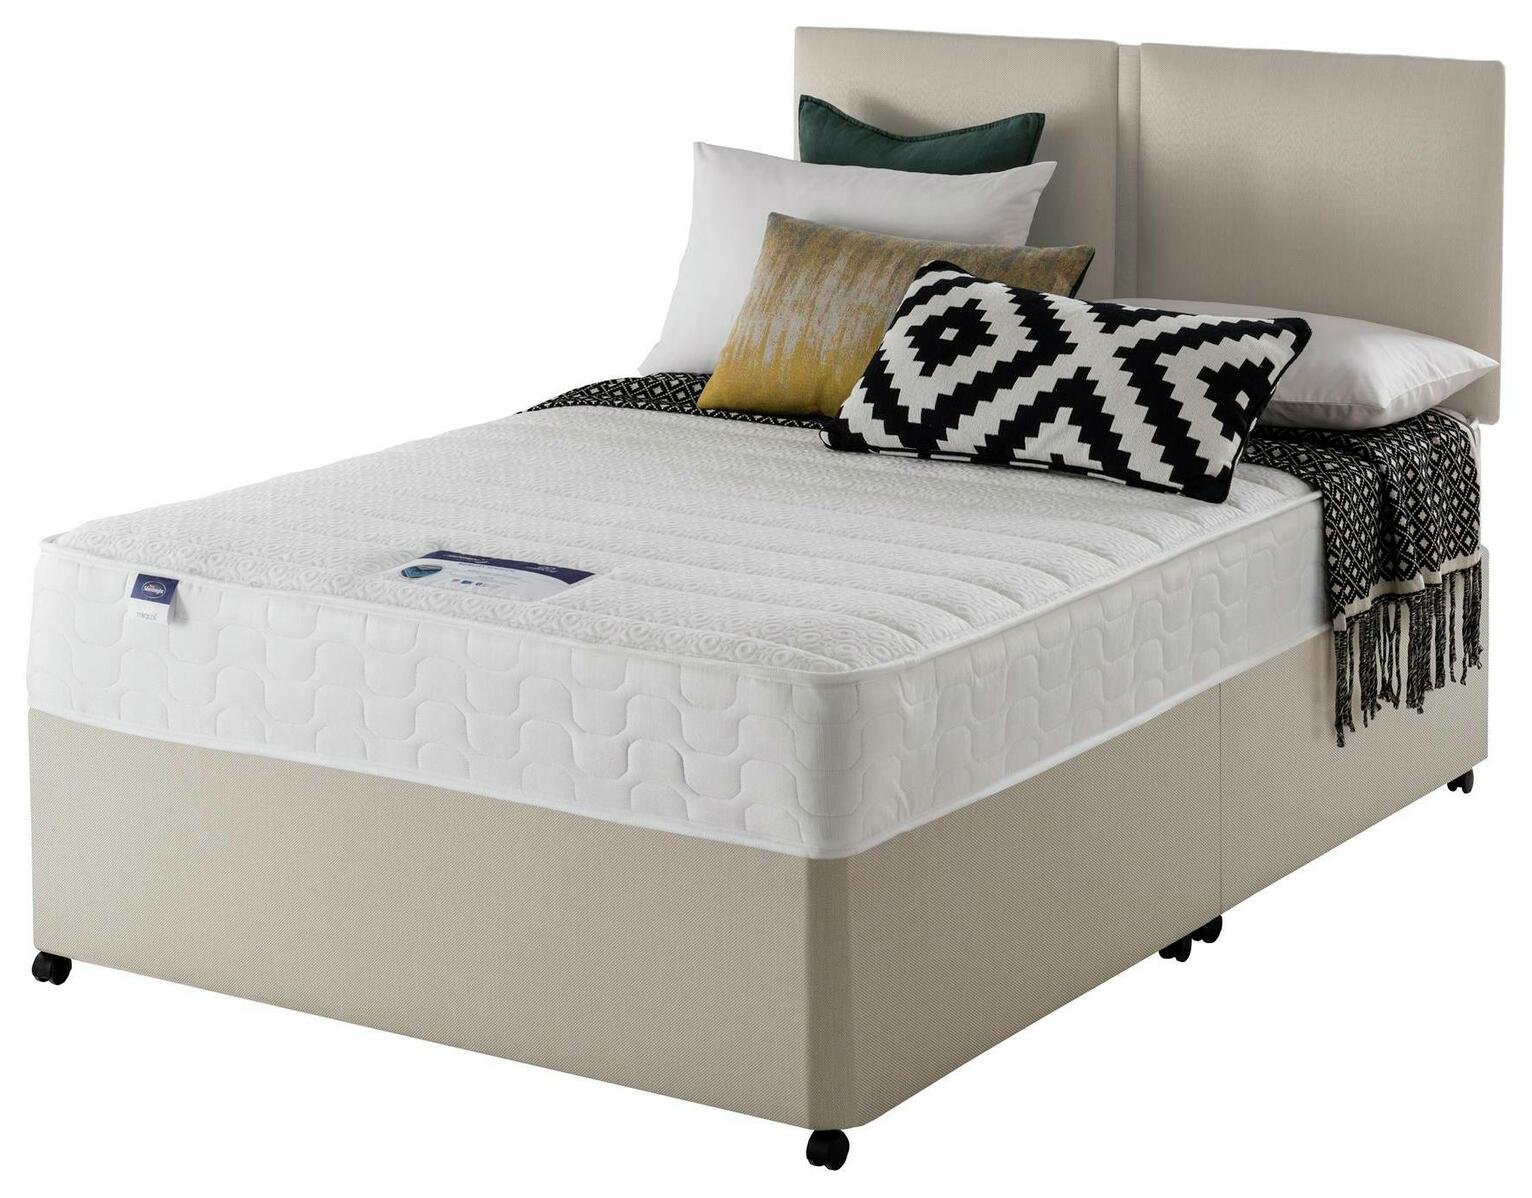 Silentnight Stroud Memory Superking Divan Bed